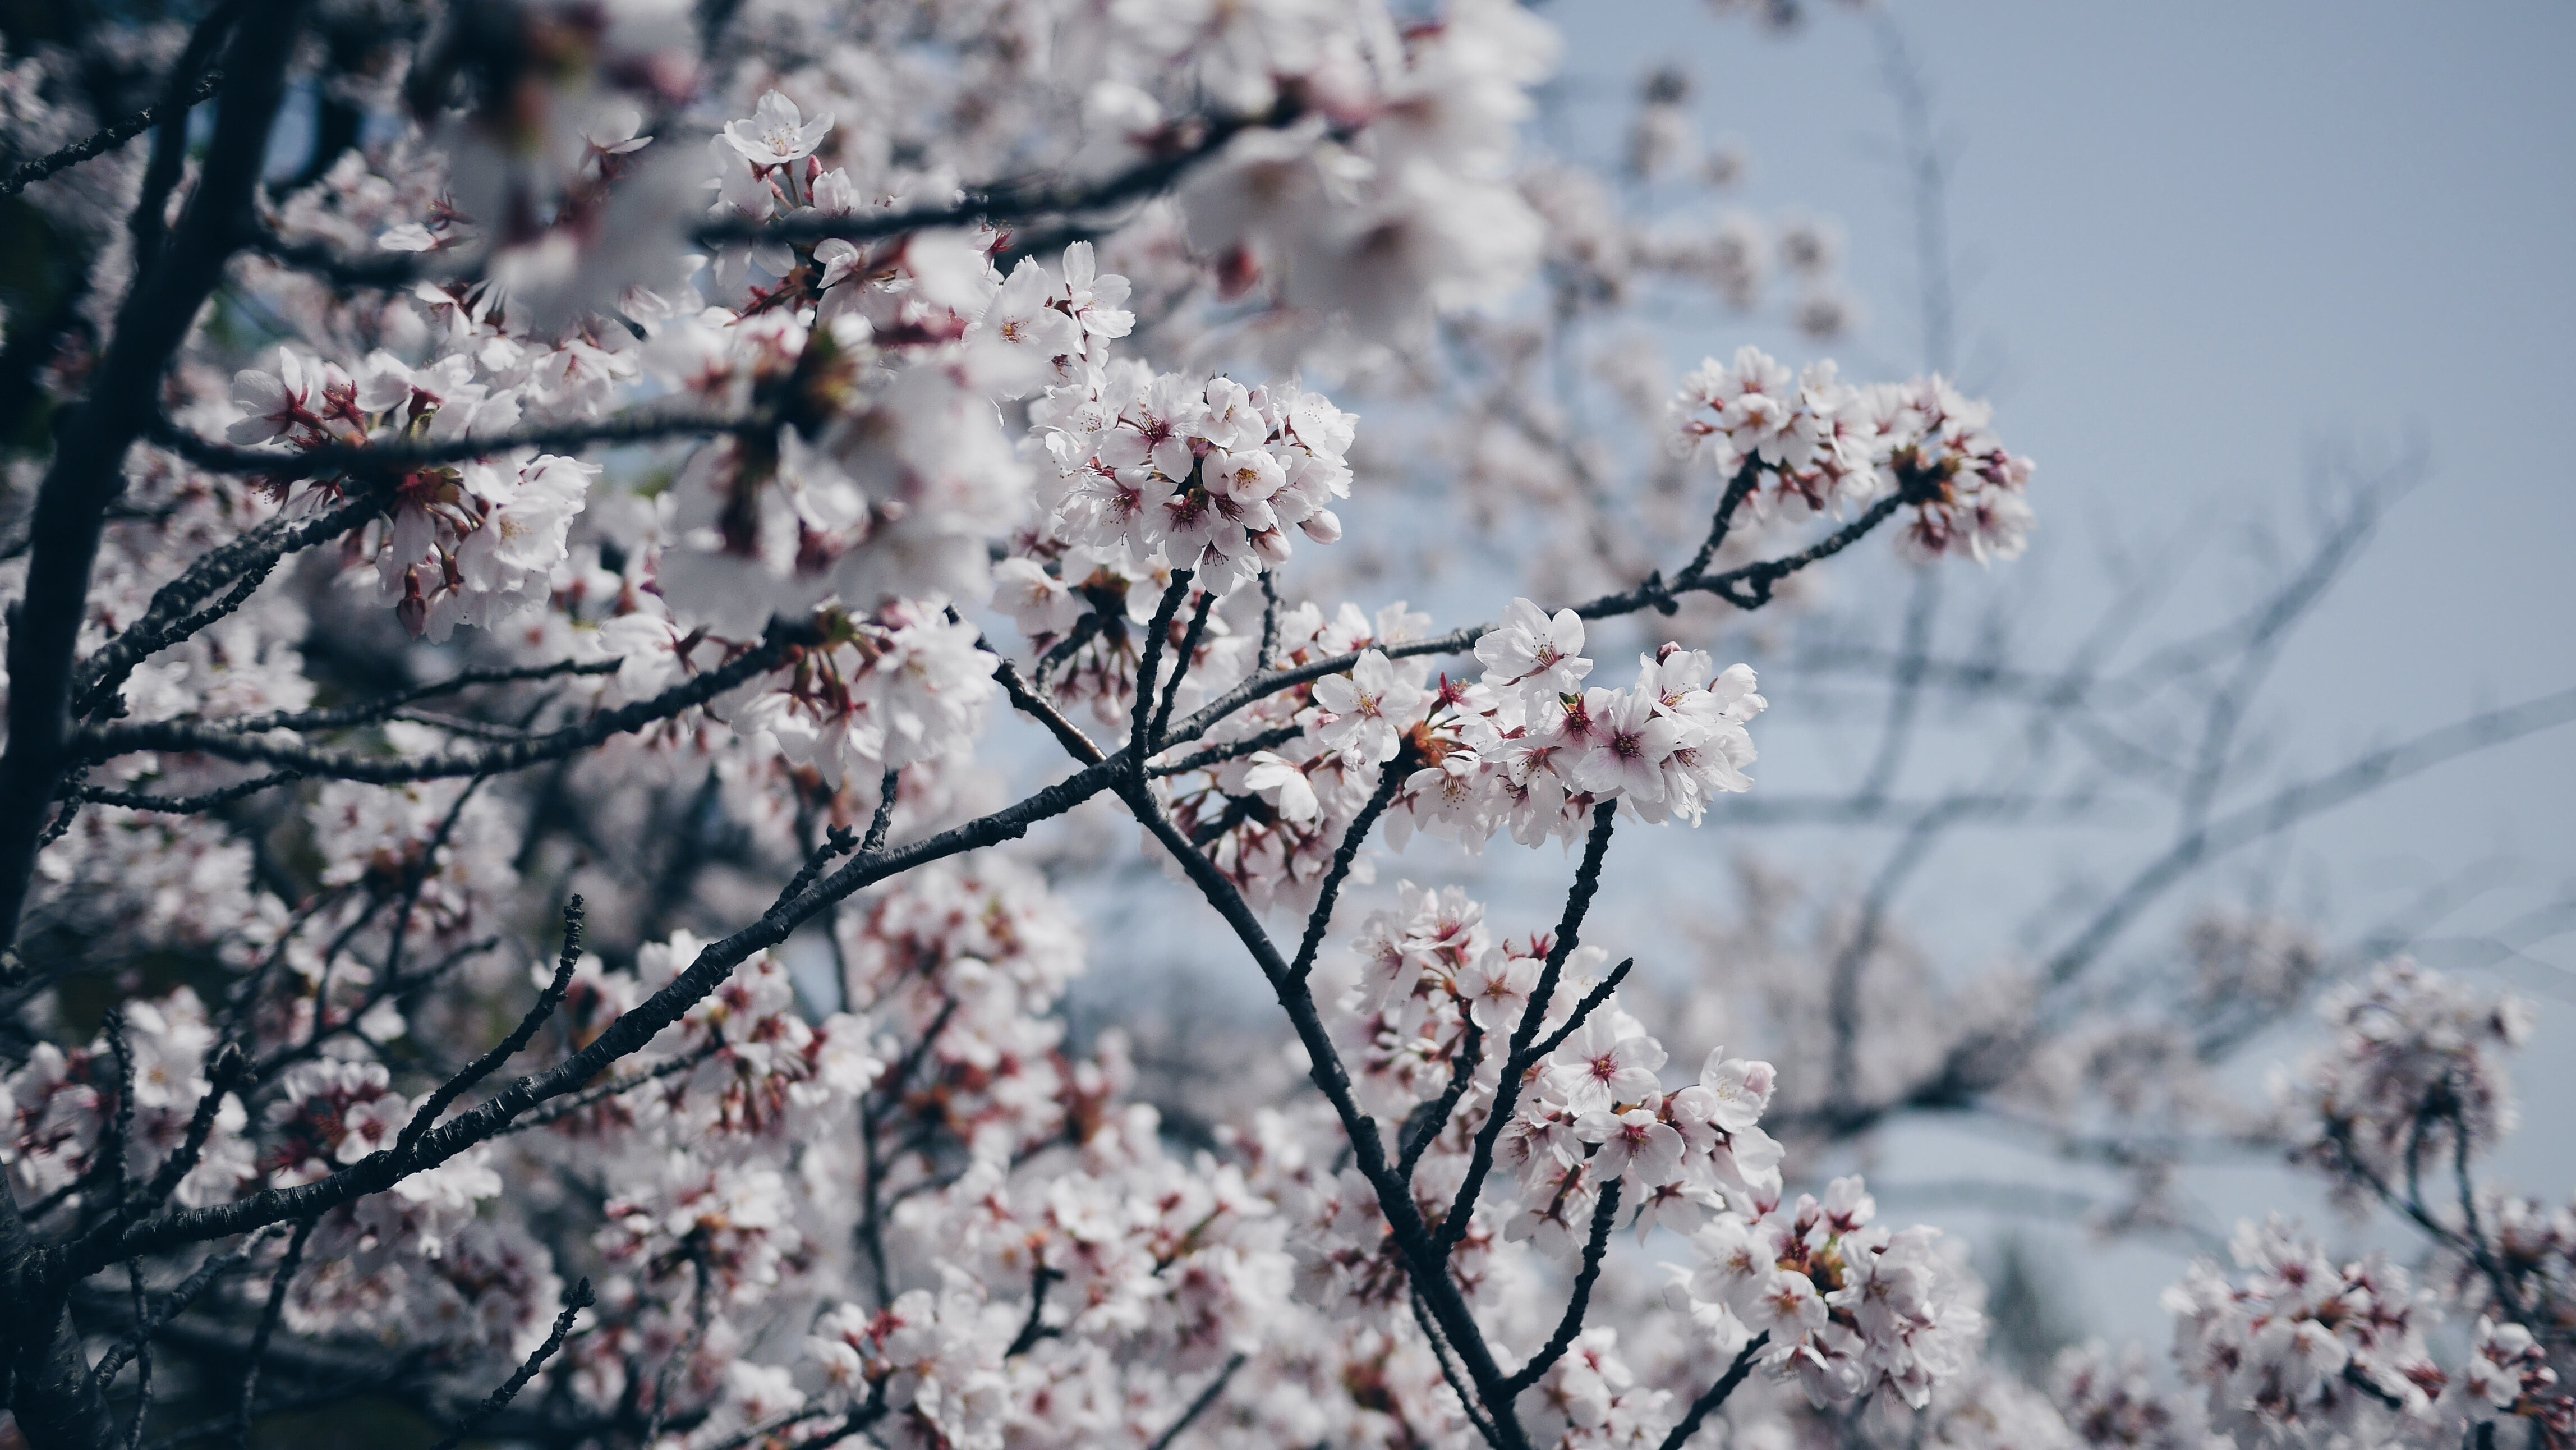 close-up photography of white flowering tree